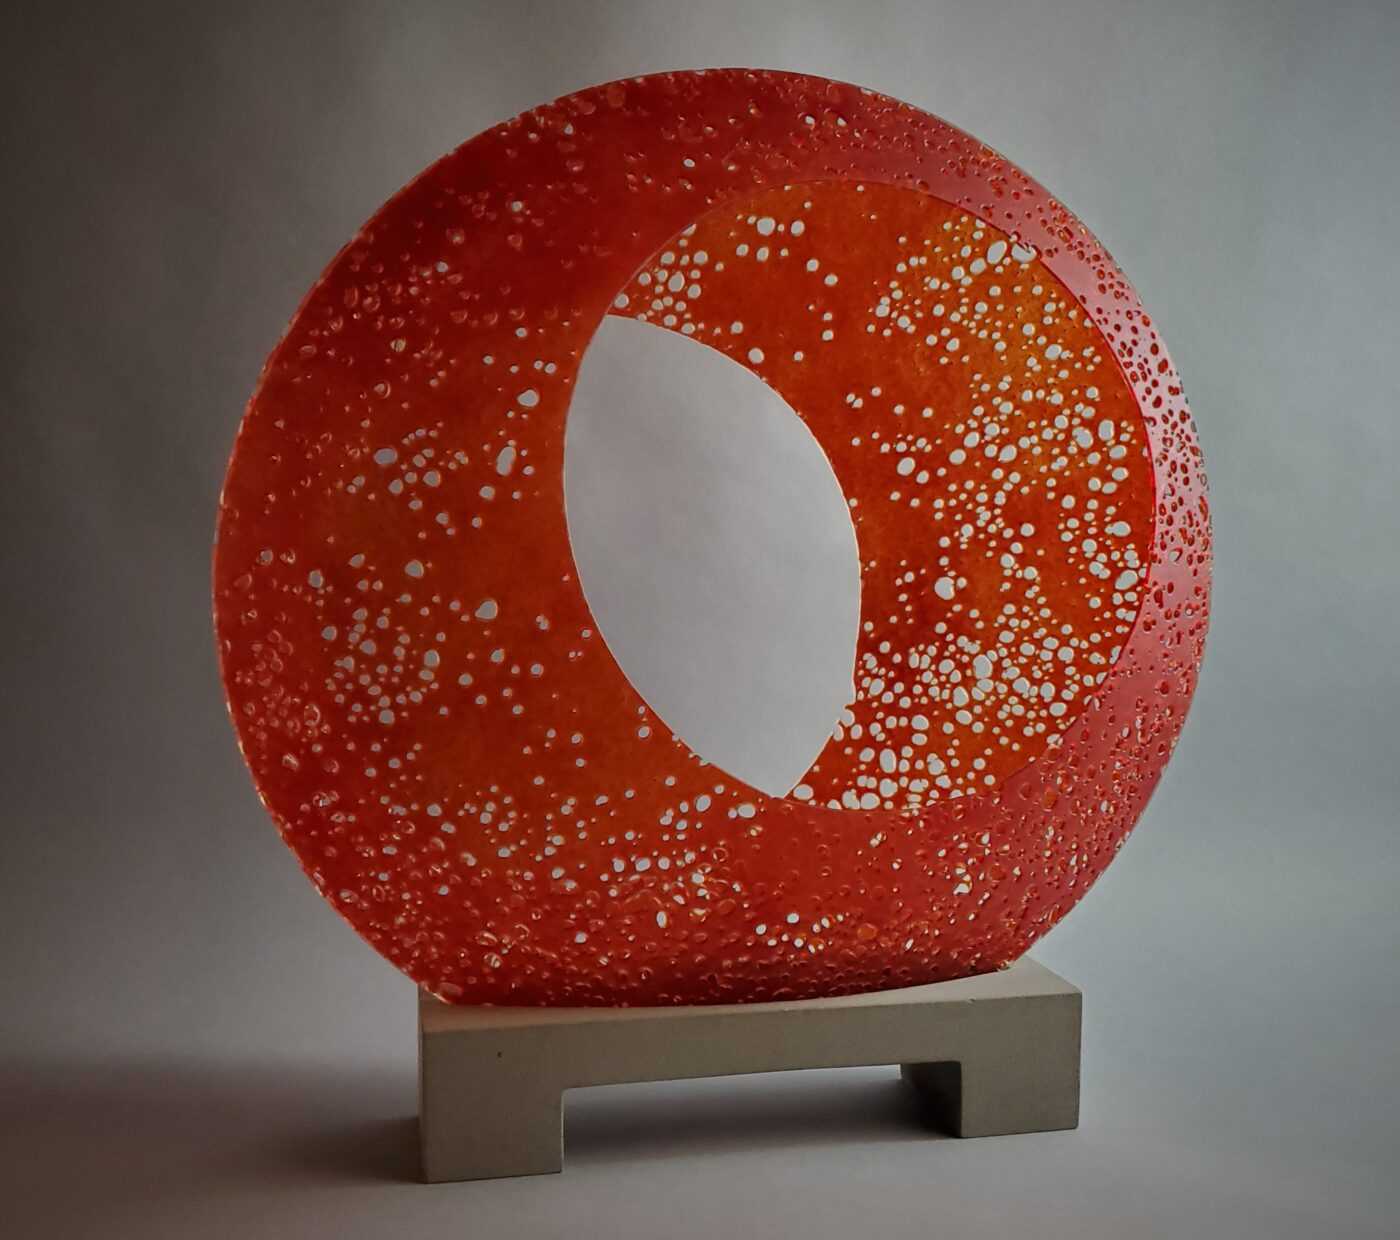 red glass sculpture